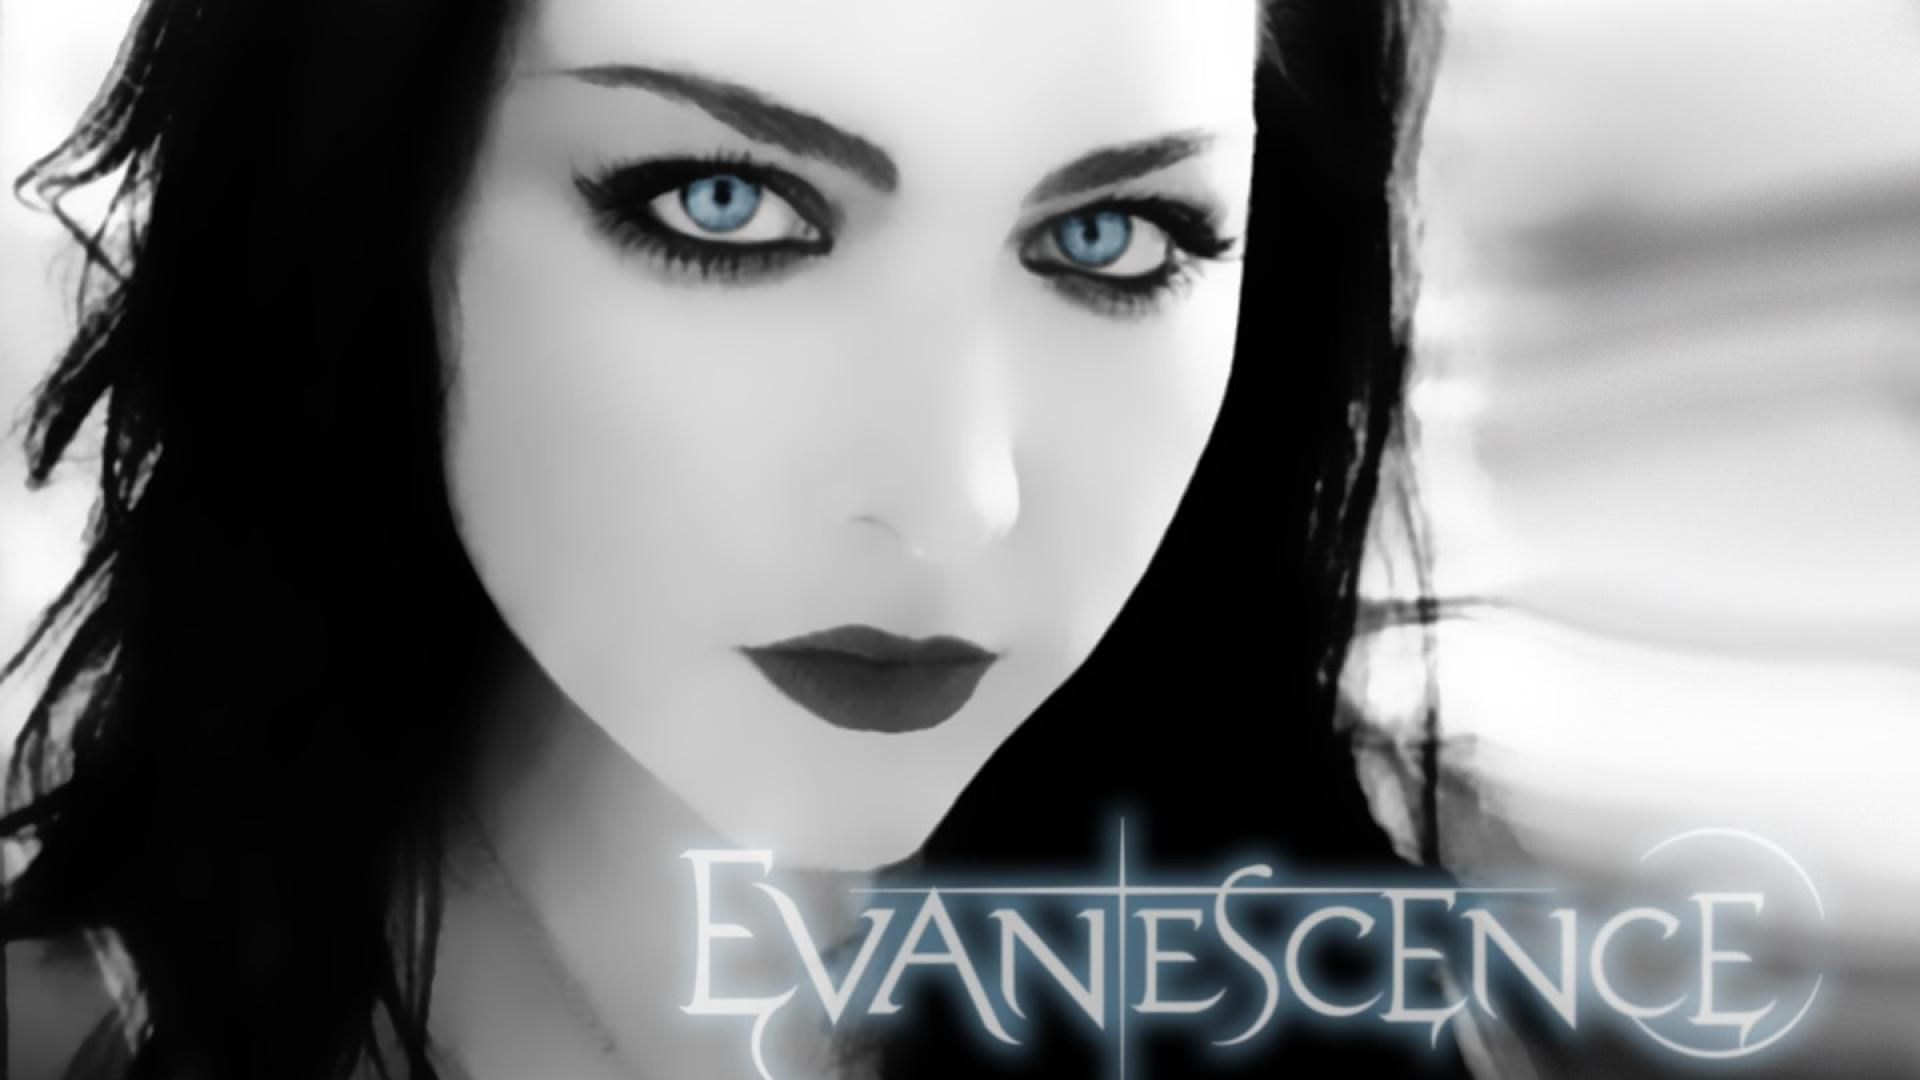 Amazing Evanescence Wallpapers High Definition